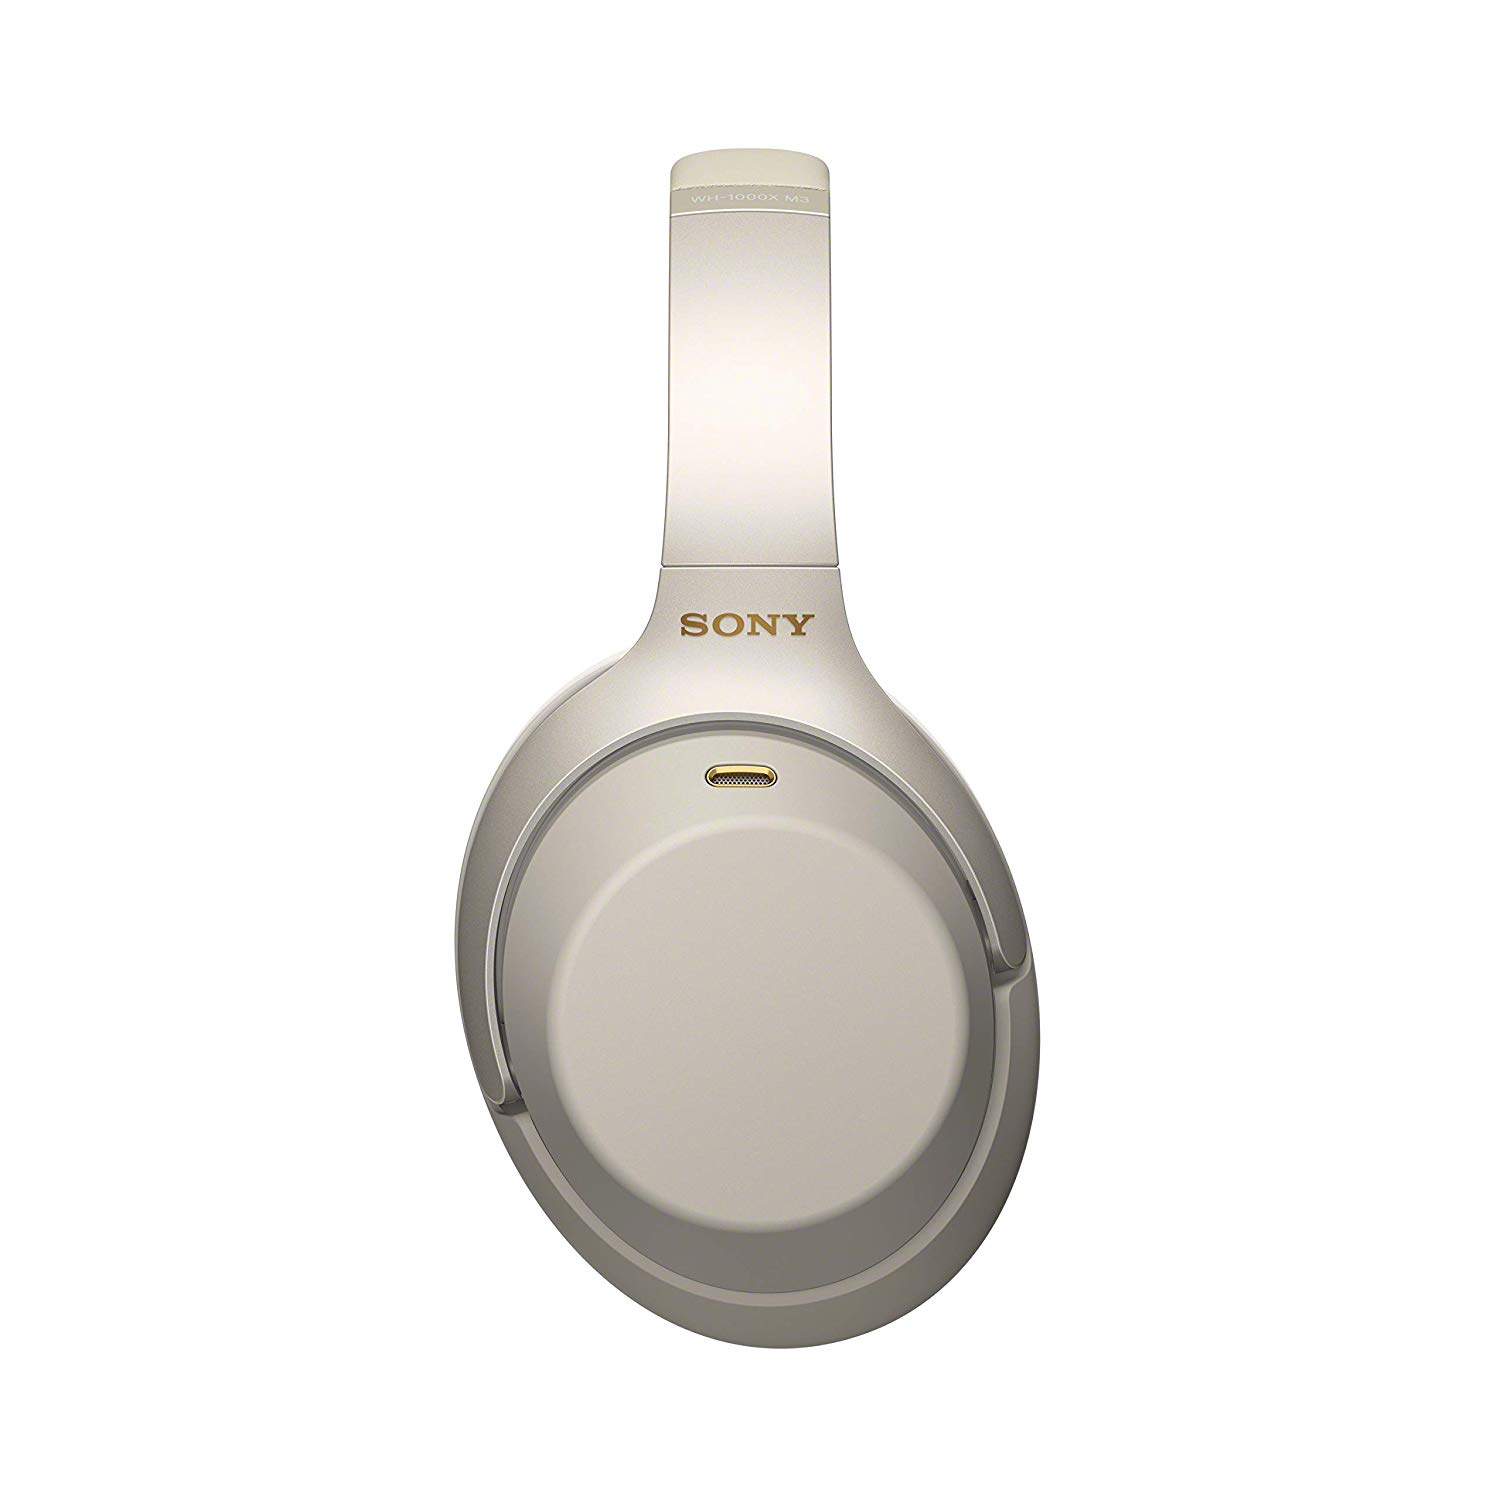 Sony-WH-1000XM3-Wireless-Noise-Canceling-Over-Ear-Headphones-w-Google-Assistant thumbnail 18